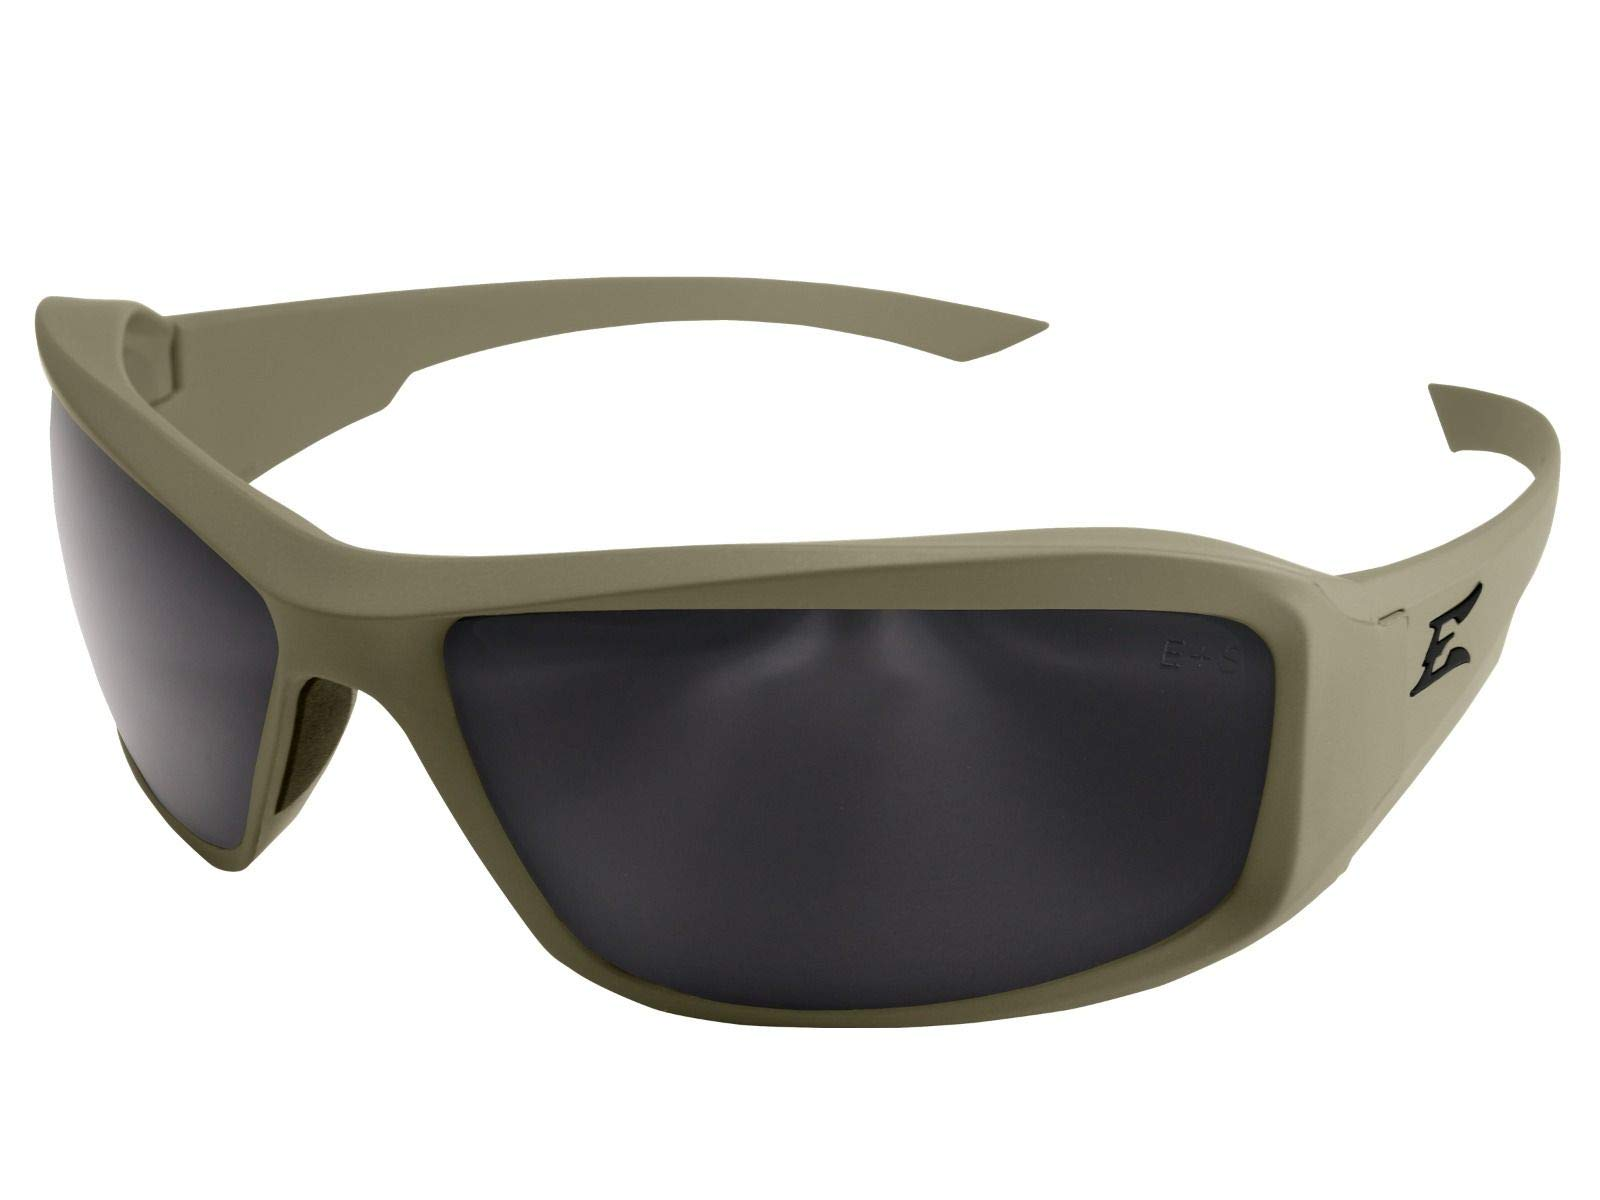 Edge Eyewear XH65-G15-TT Hamel Ranger Green Thin Temple - Soft-Touch Gray Frame/G-15 Vapor Shield Lenses by Edge Eyewear